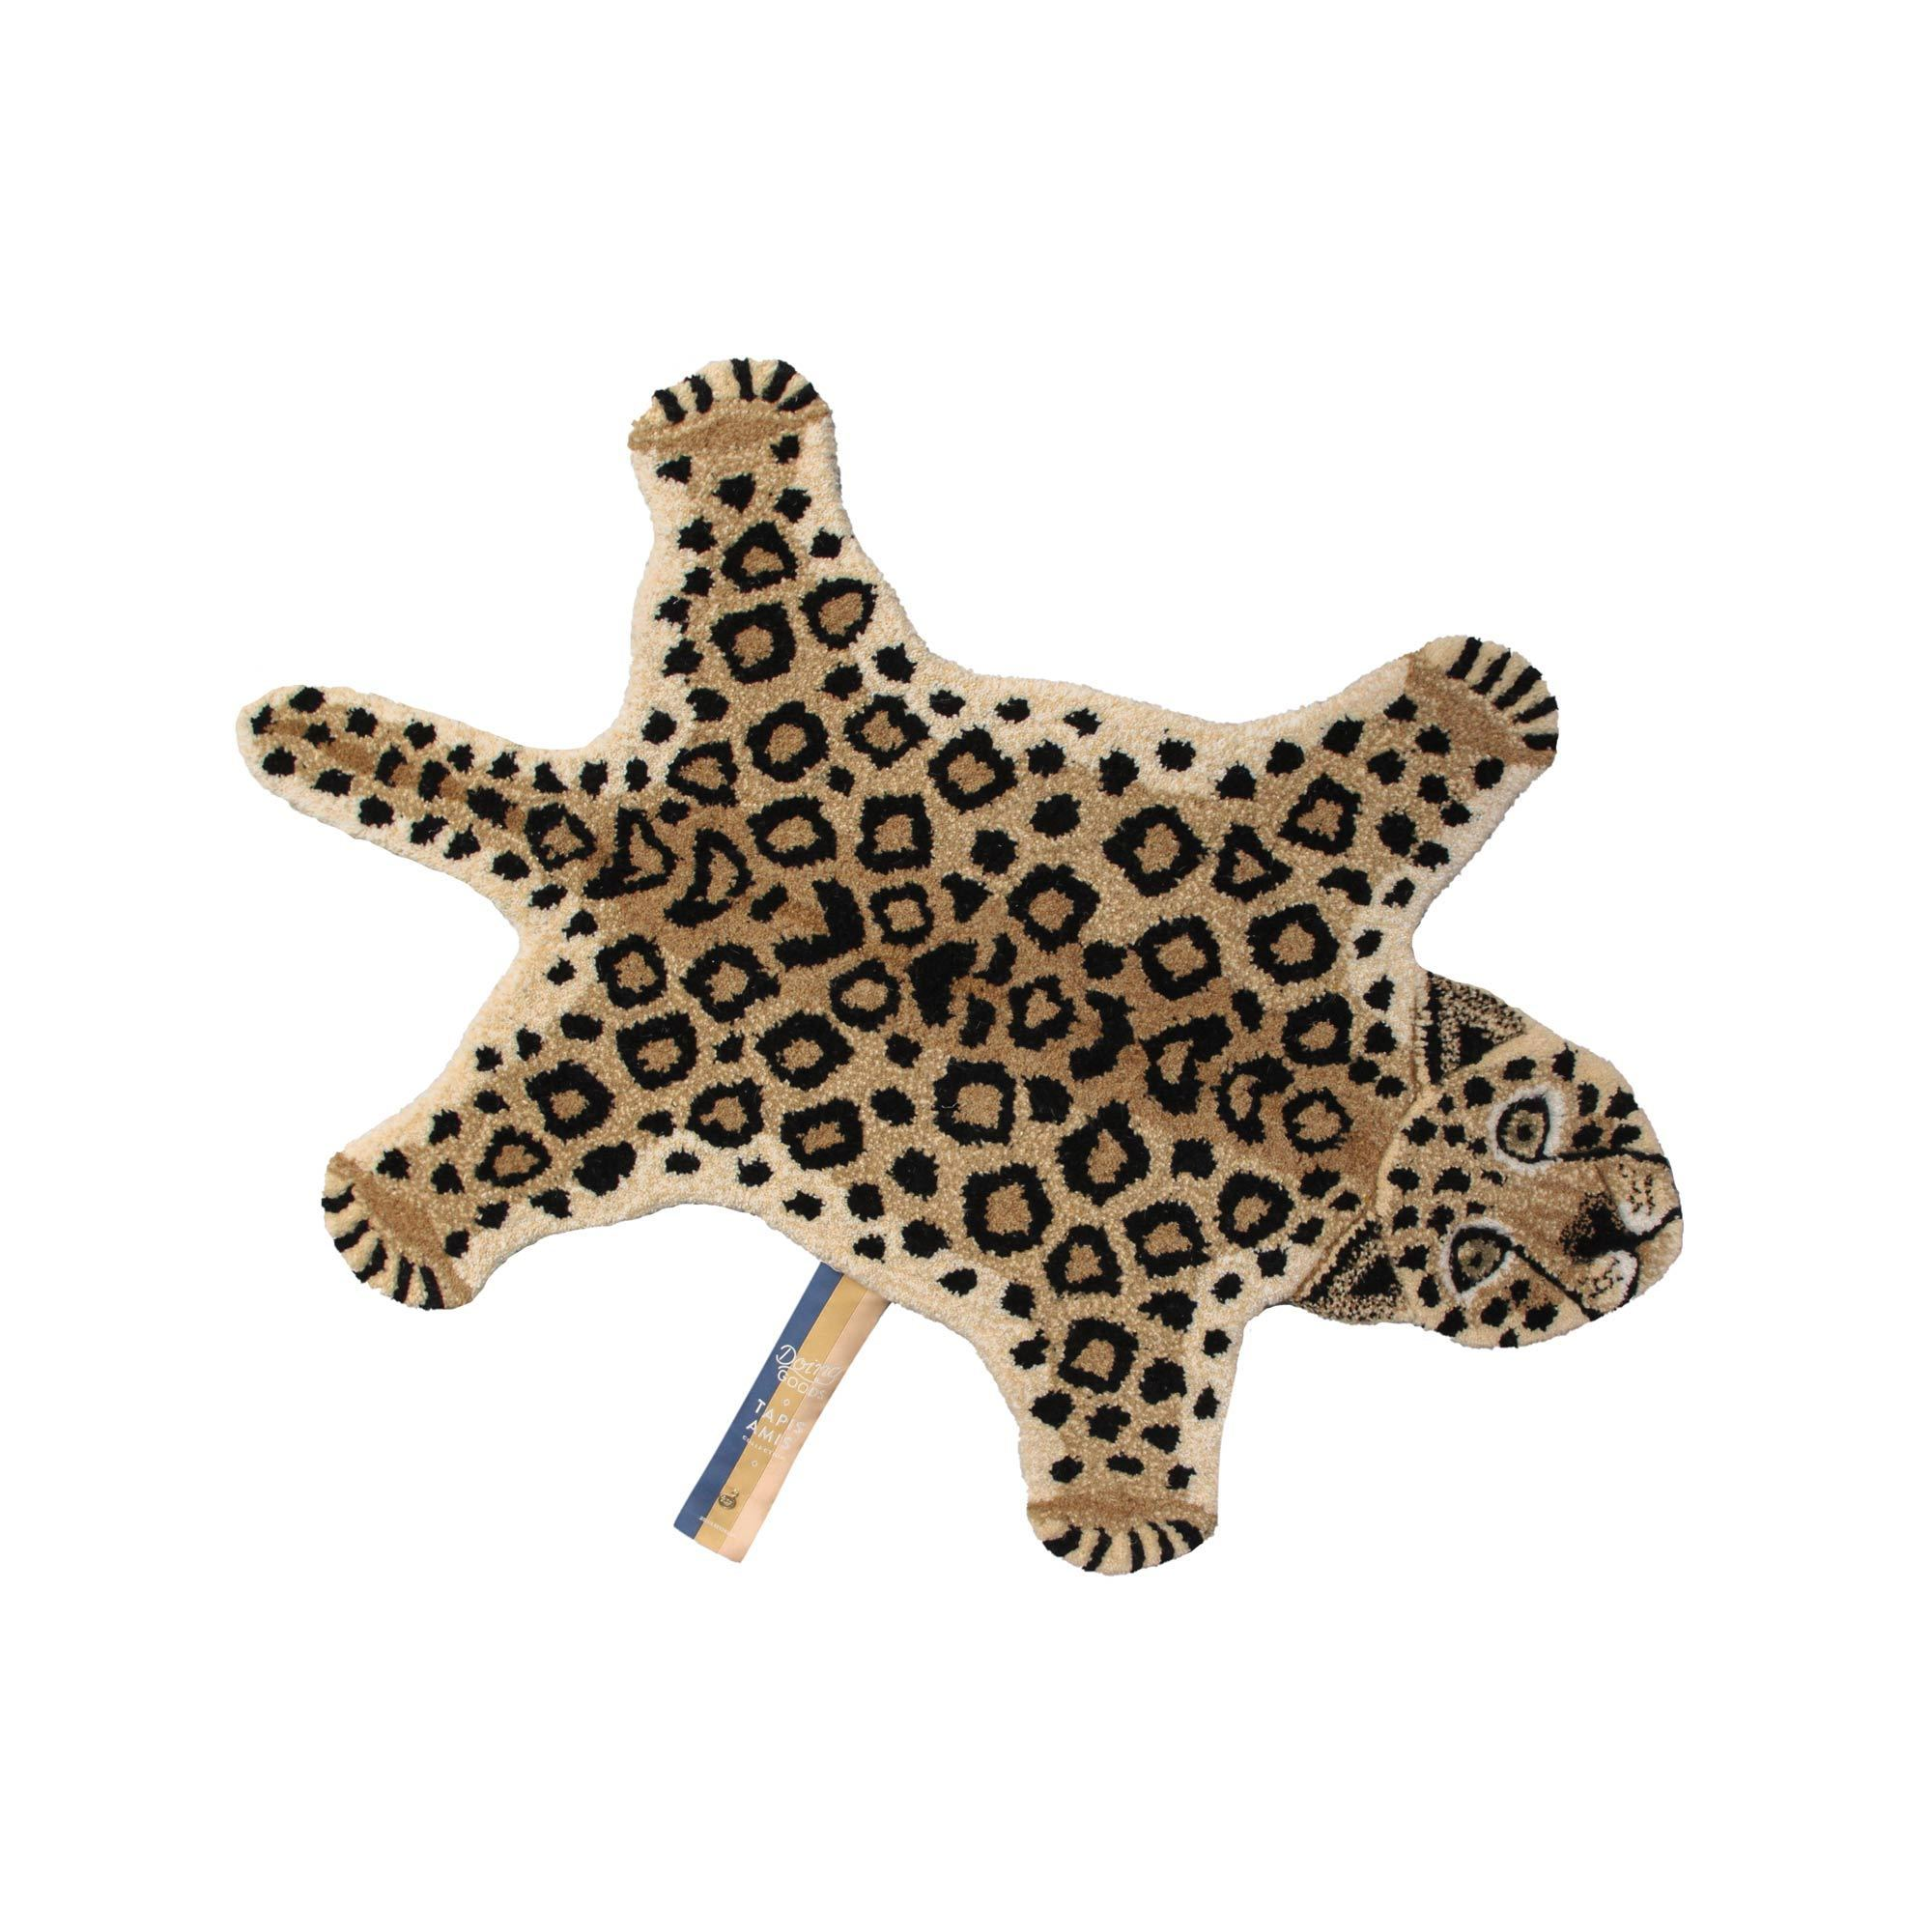 Loony Leopard Rug Small